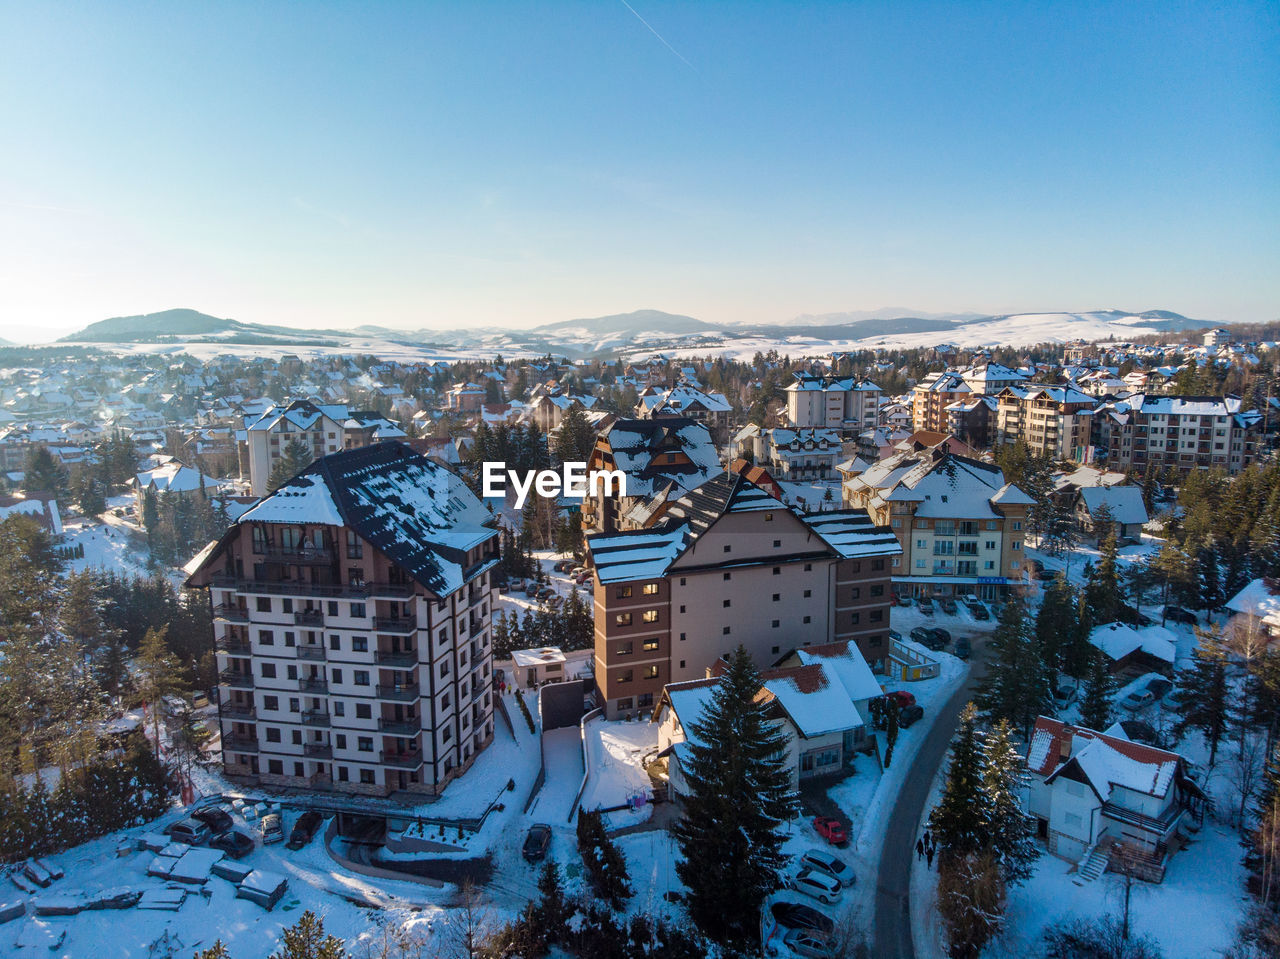 building exterior, architecture, built structure, building, winter, city, snow, residential district, cold temperature, cityscape, sky, nature, crowded, mountain, crowd, high angle view, house, town, outdoors, townscape, snowcapped mountain